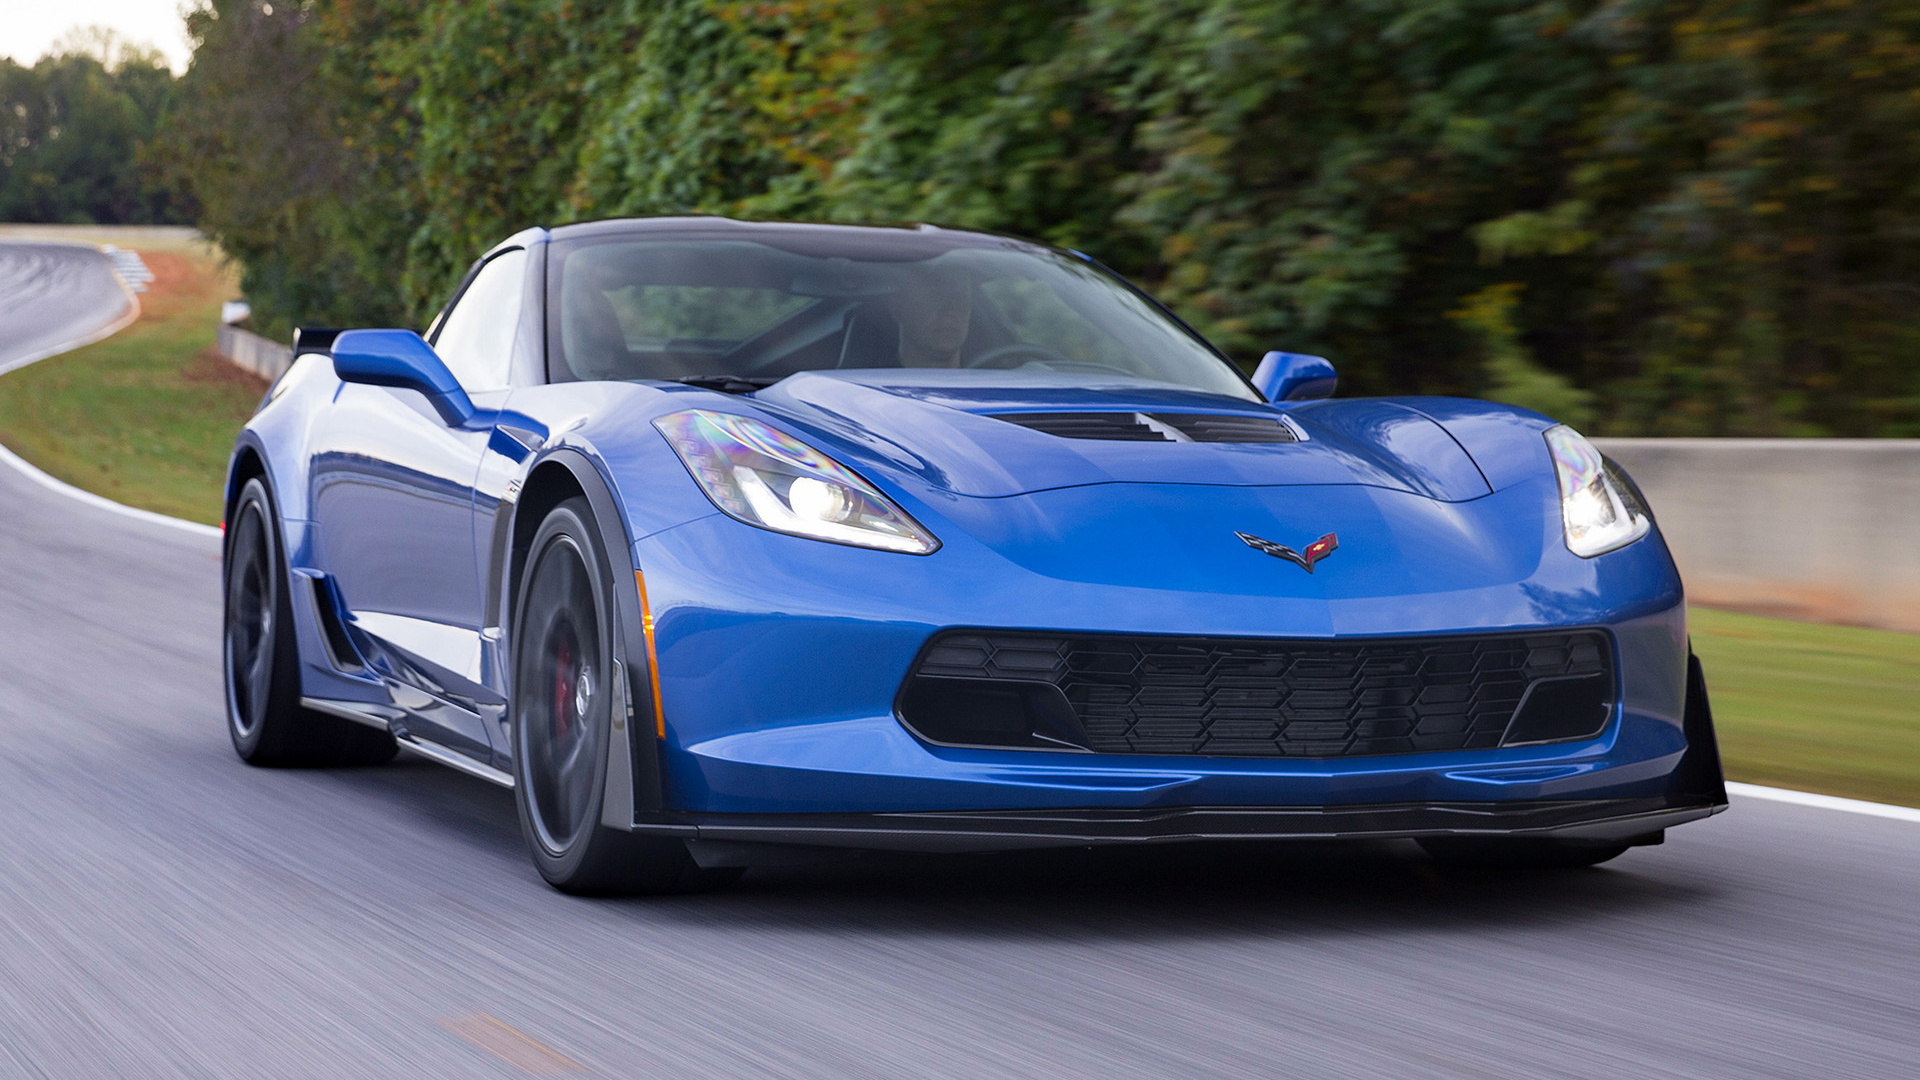 2015 Chevrolet Corvette Z06 Wallpapers And Hd Images